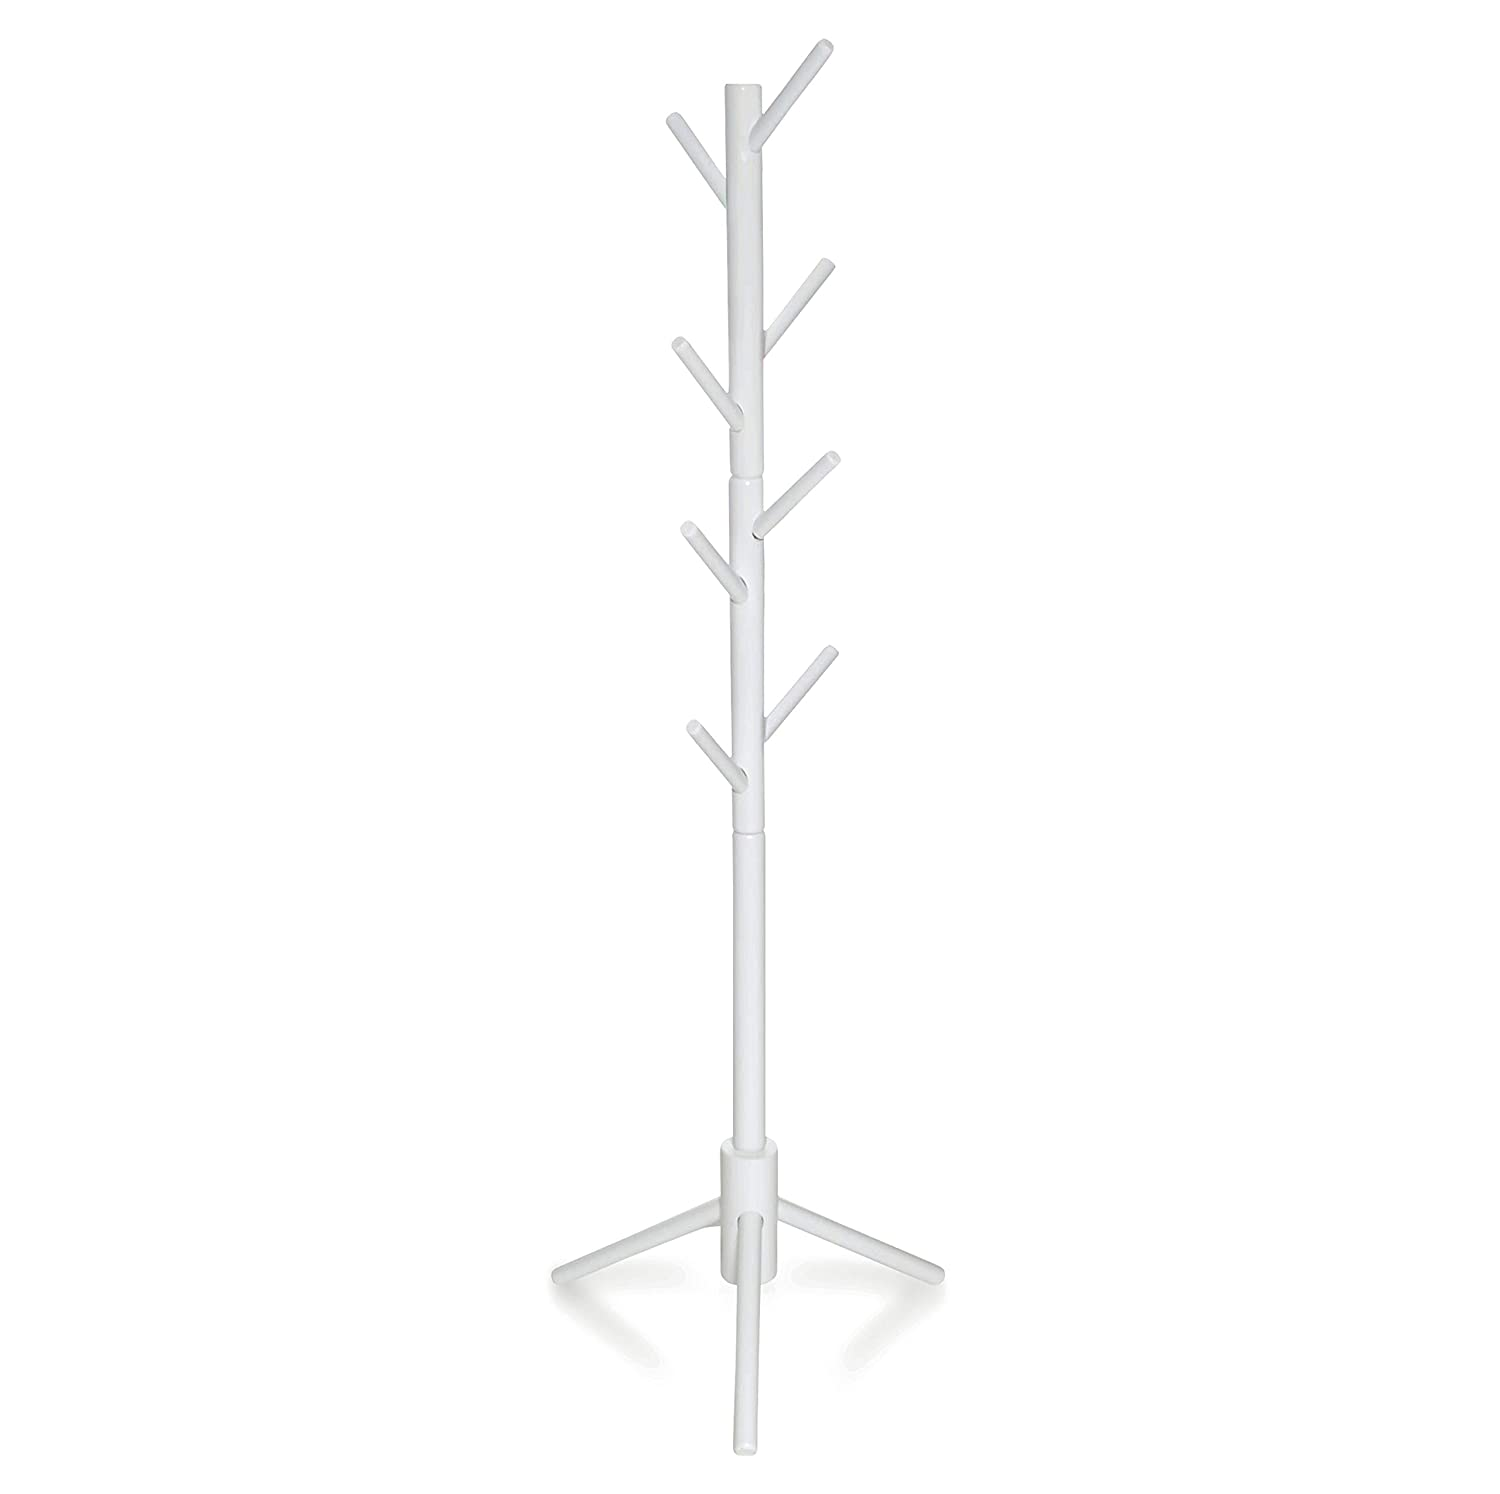 Milliard Kids Coat Tree Rack Hanger Wooden White Rack Organizer Furniture